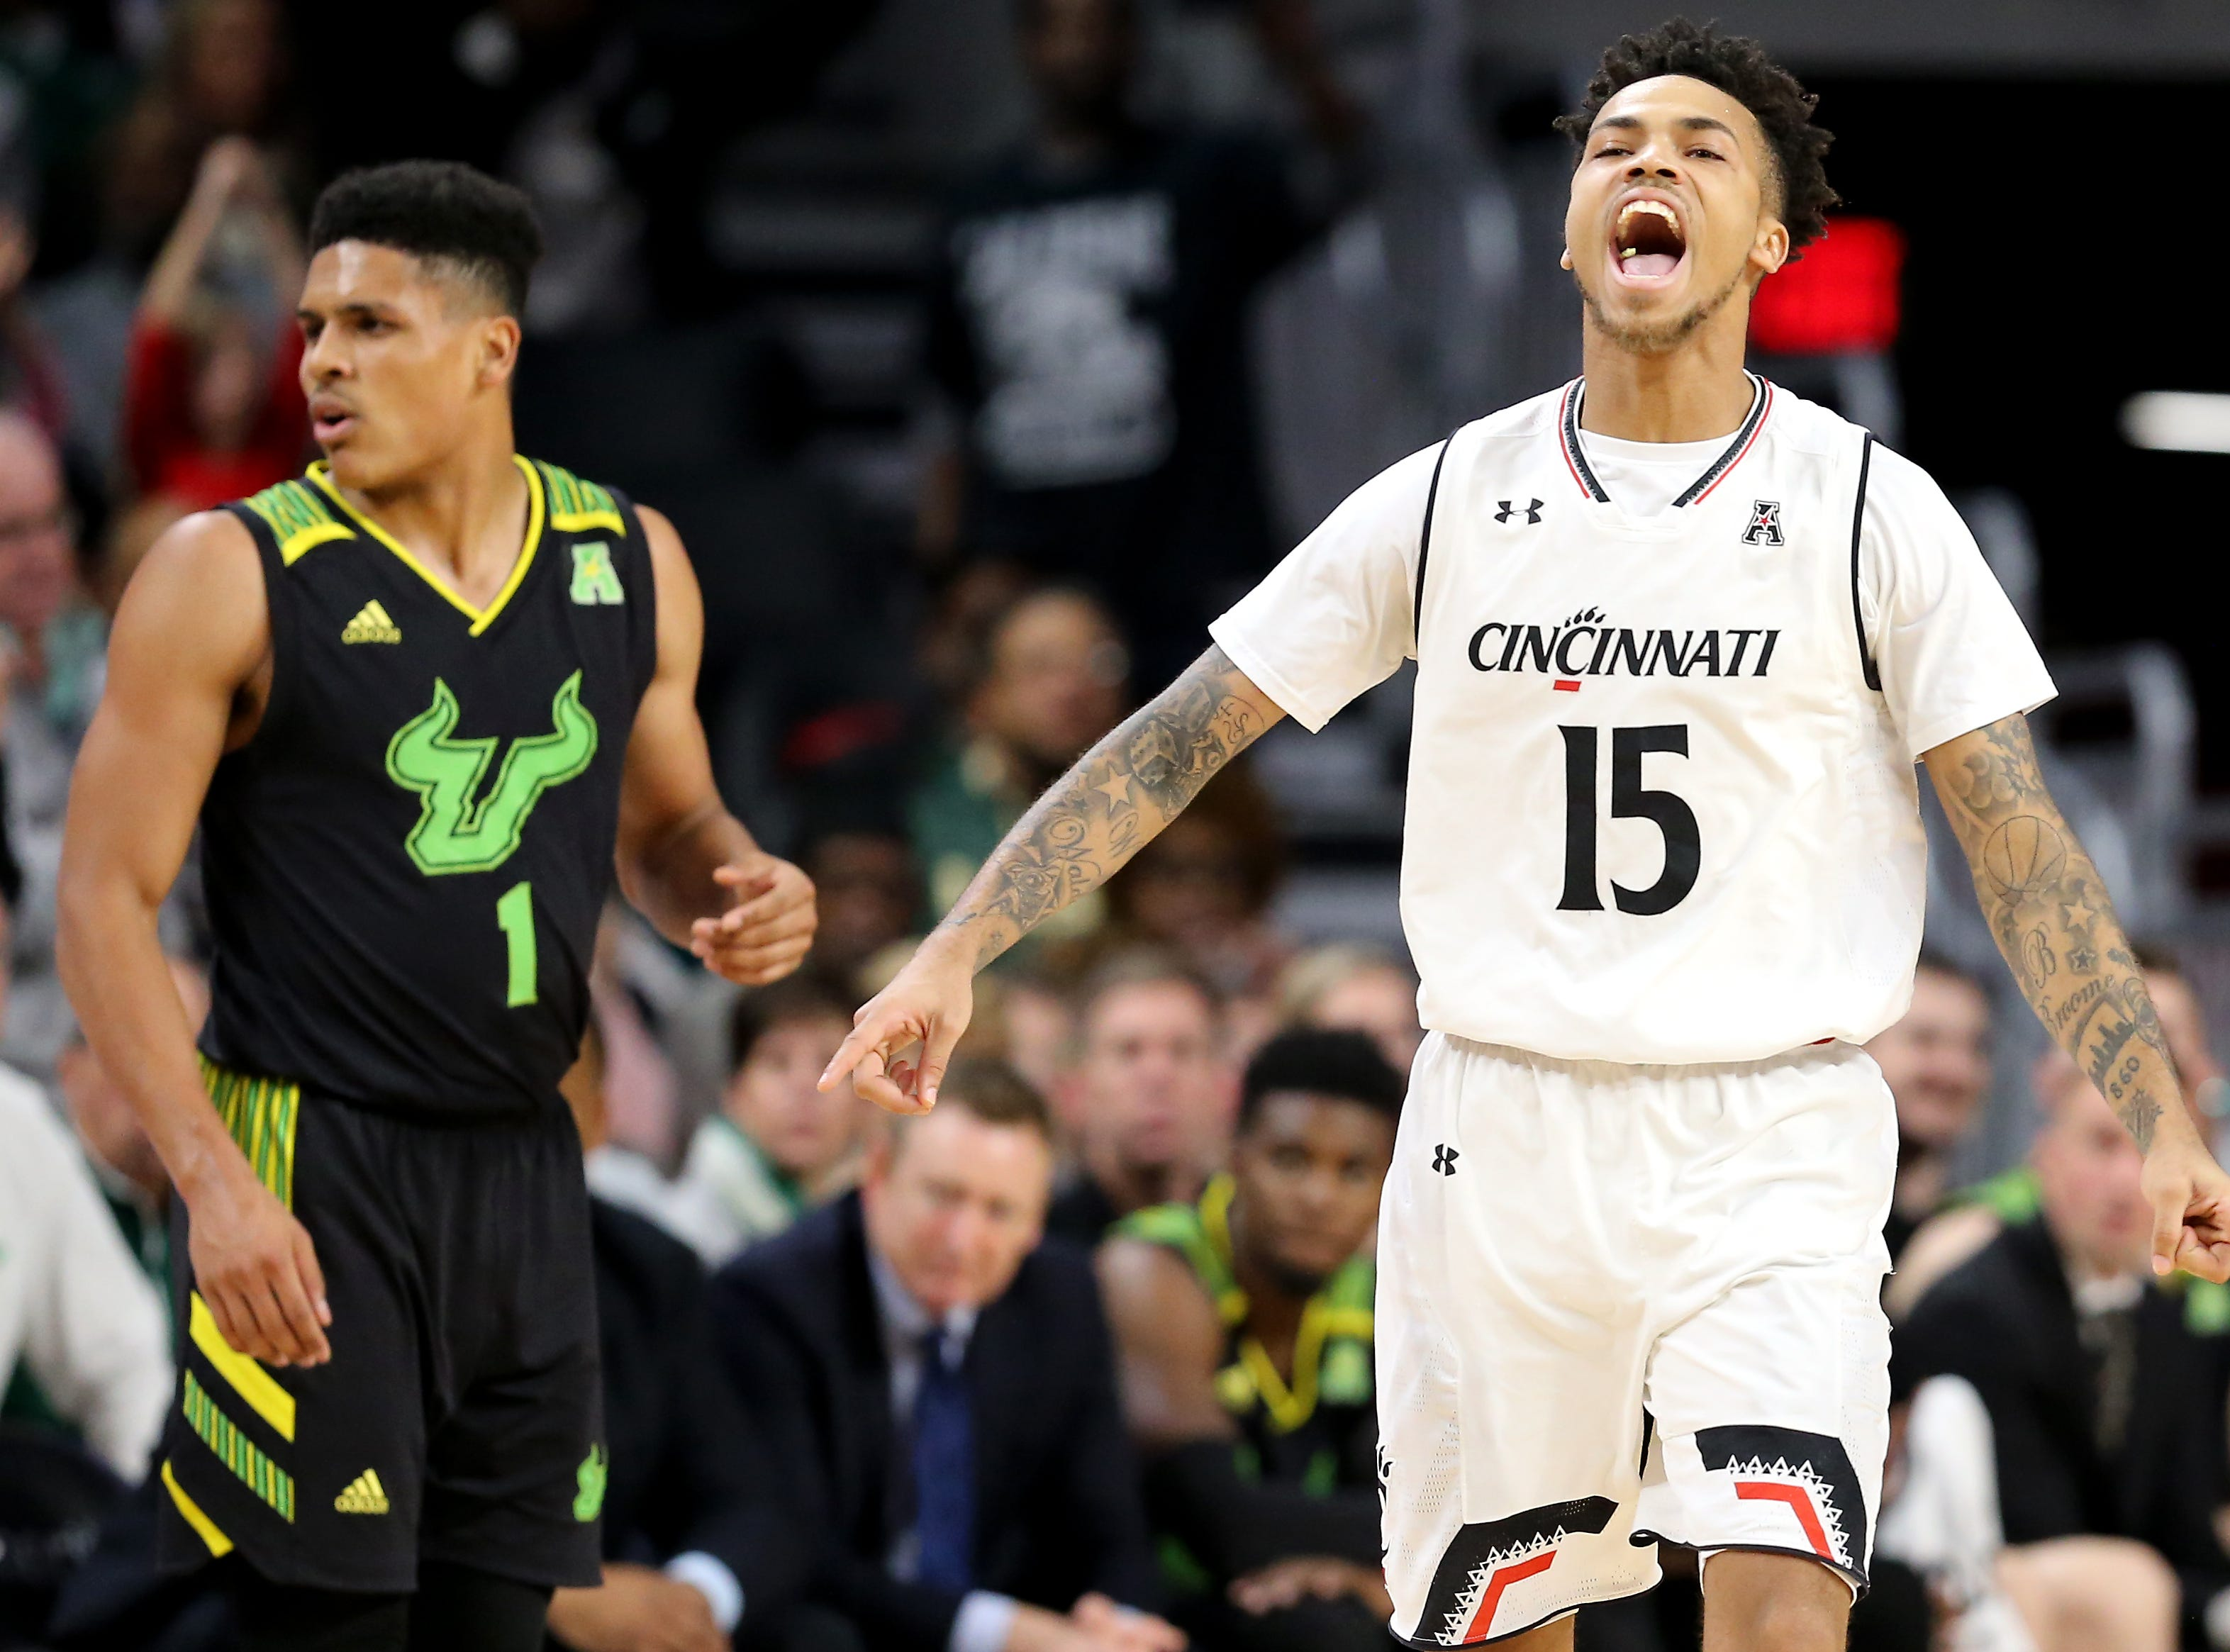 Cincinnati Bearcats guard Cane Broome (15) reacts when a timeout is called after Cincinnati went on an 8-0 run in the second half of an NCAA college basketball game against the South Florida Bulls, Tuesday, Jan. 15, 2019, at Fifth Third Arena in Cincinnati. Cincinnati won 82-74.